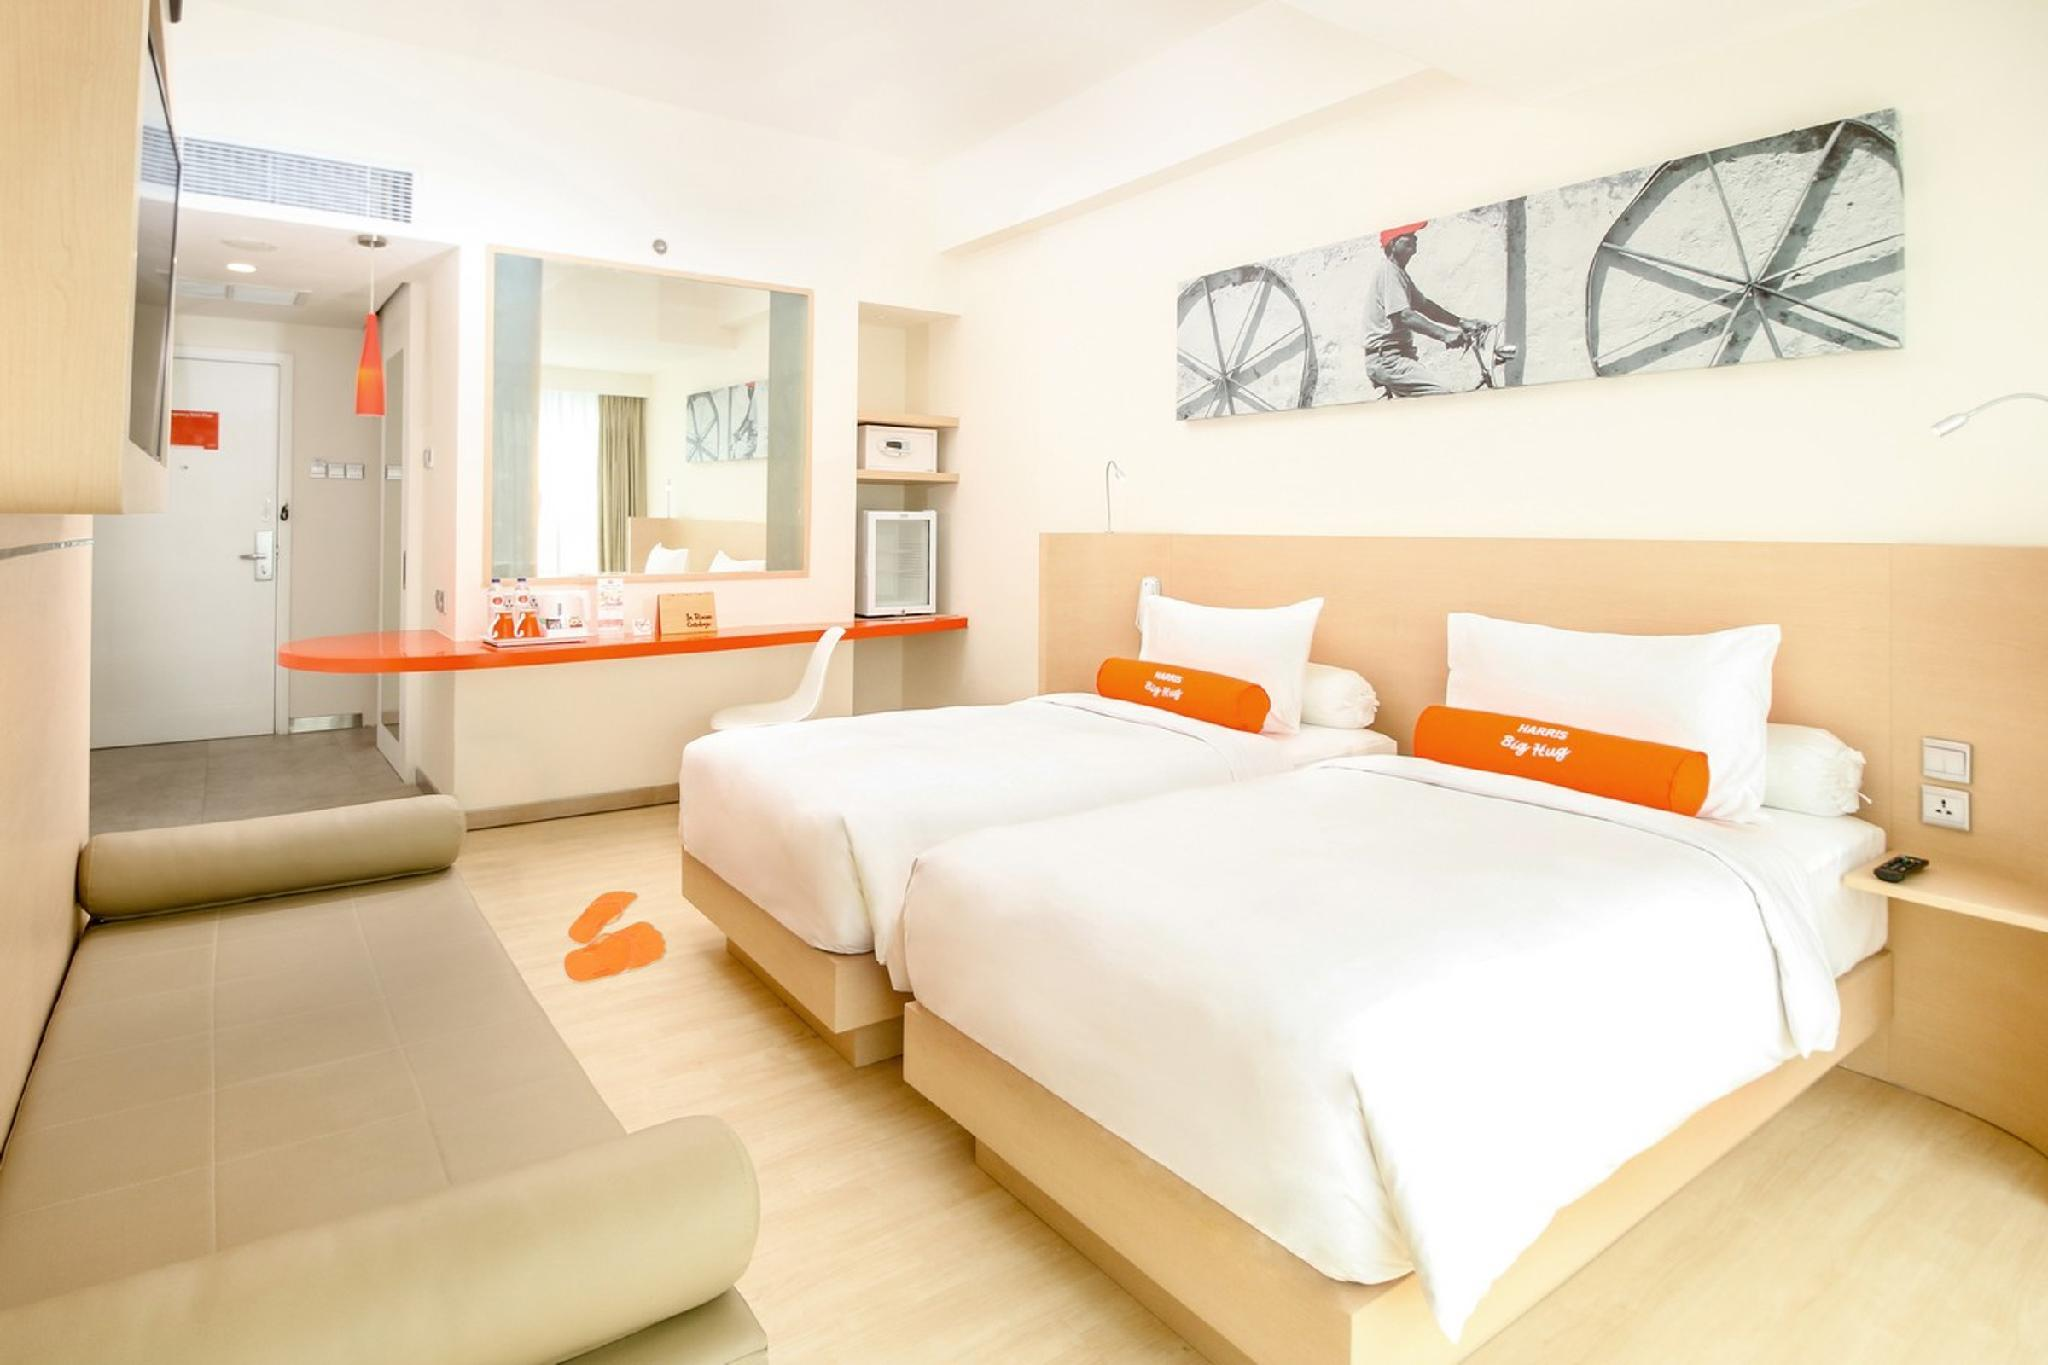 Harris hotel sentraland in semarang room deals photos & reviews